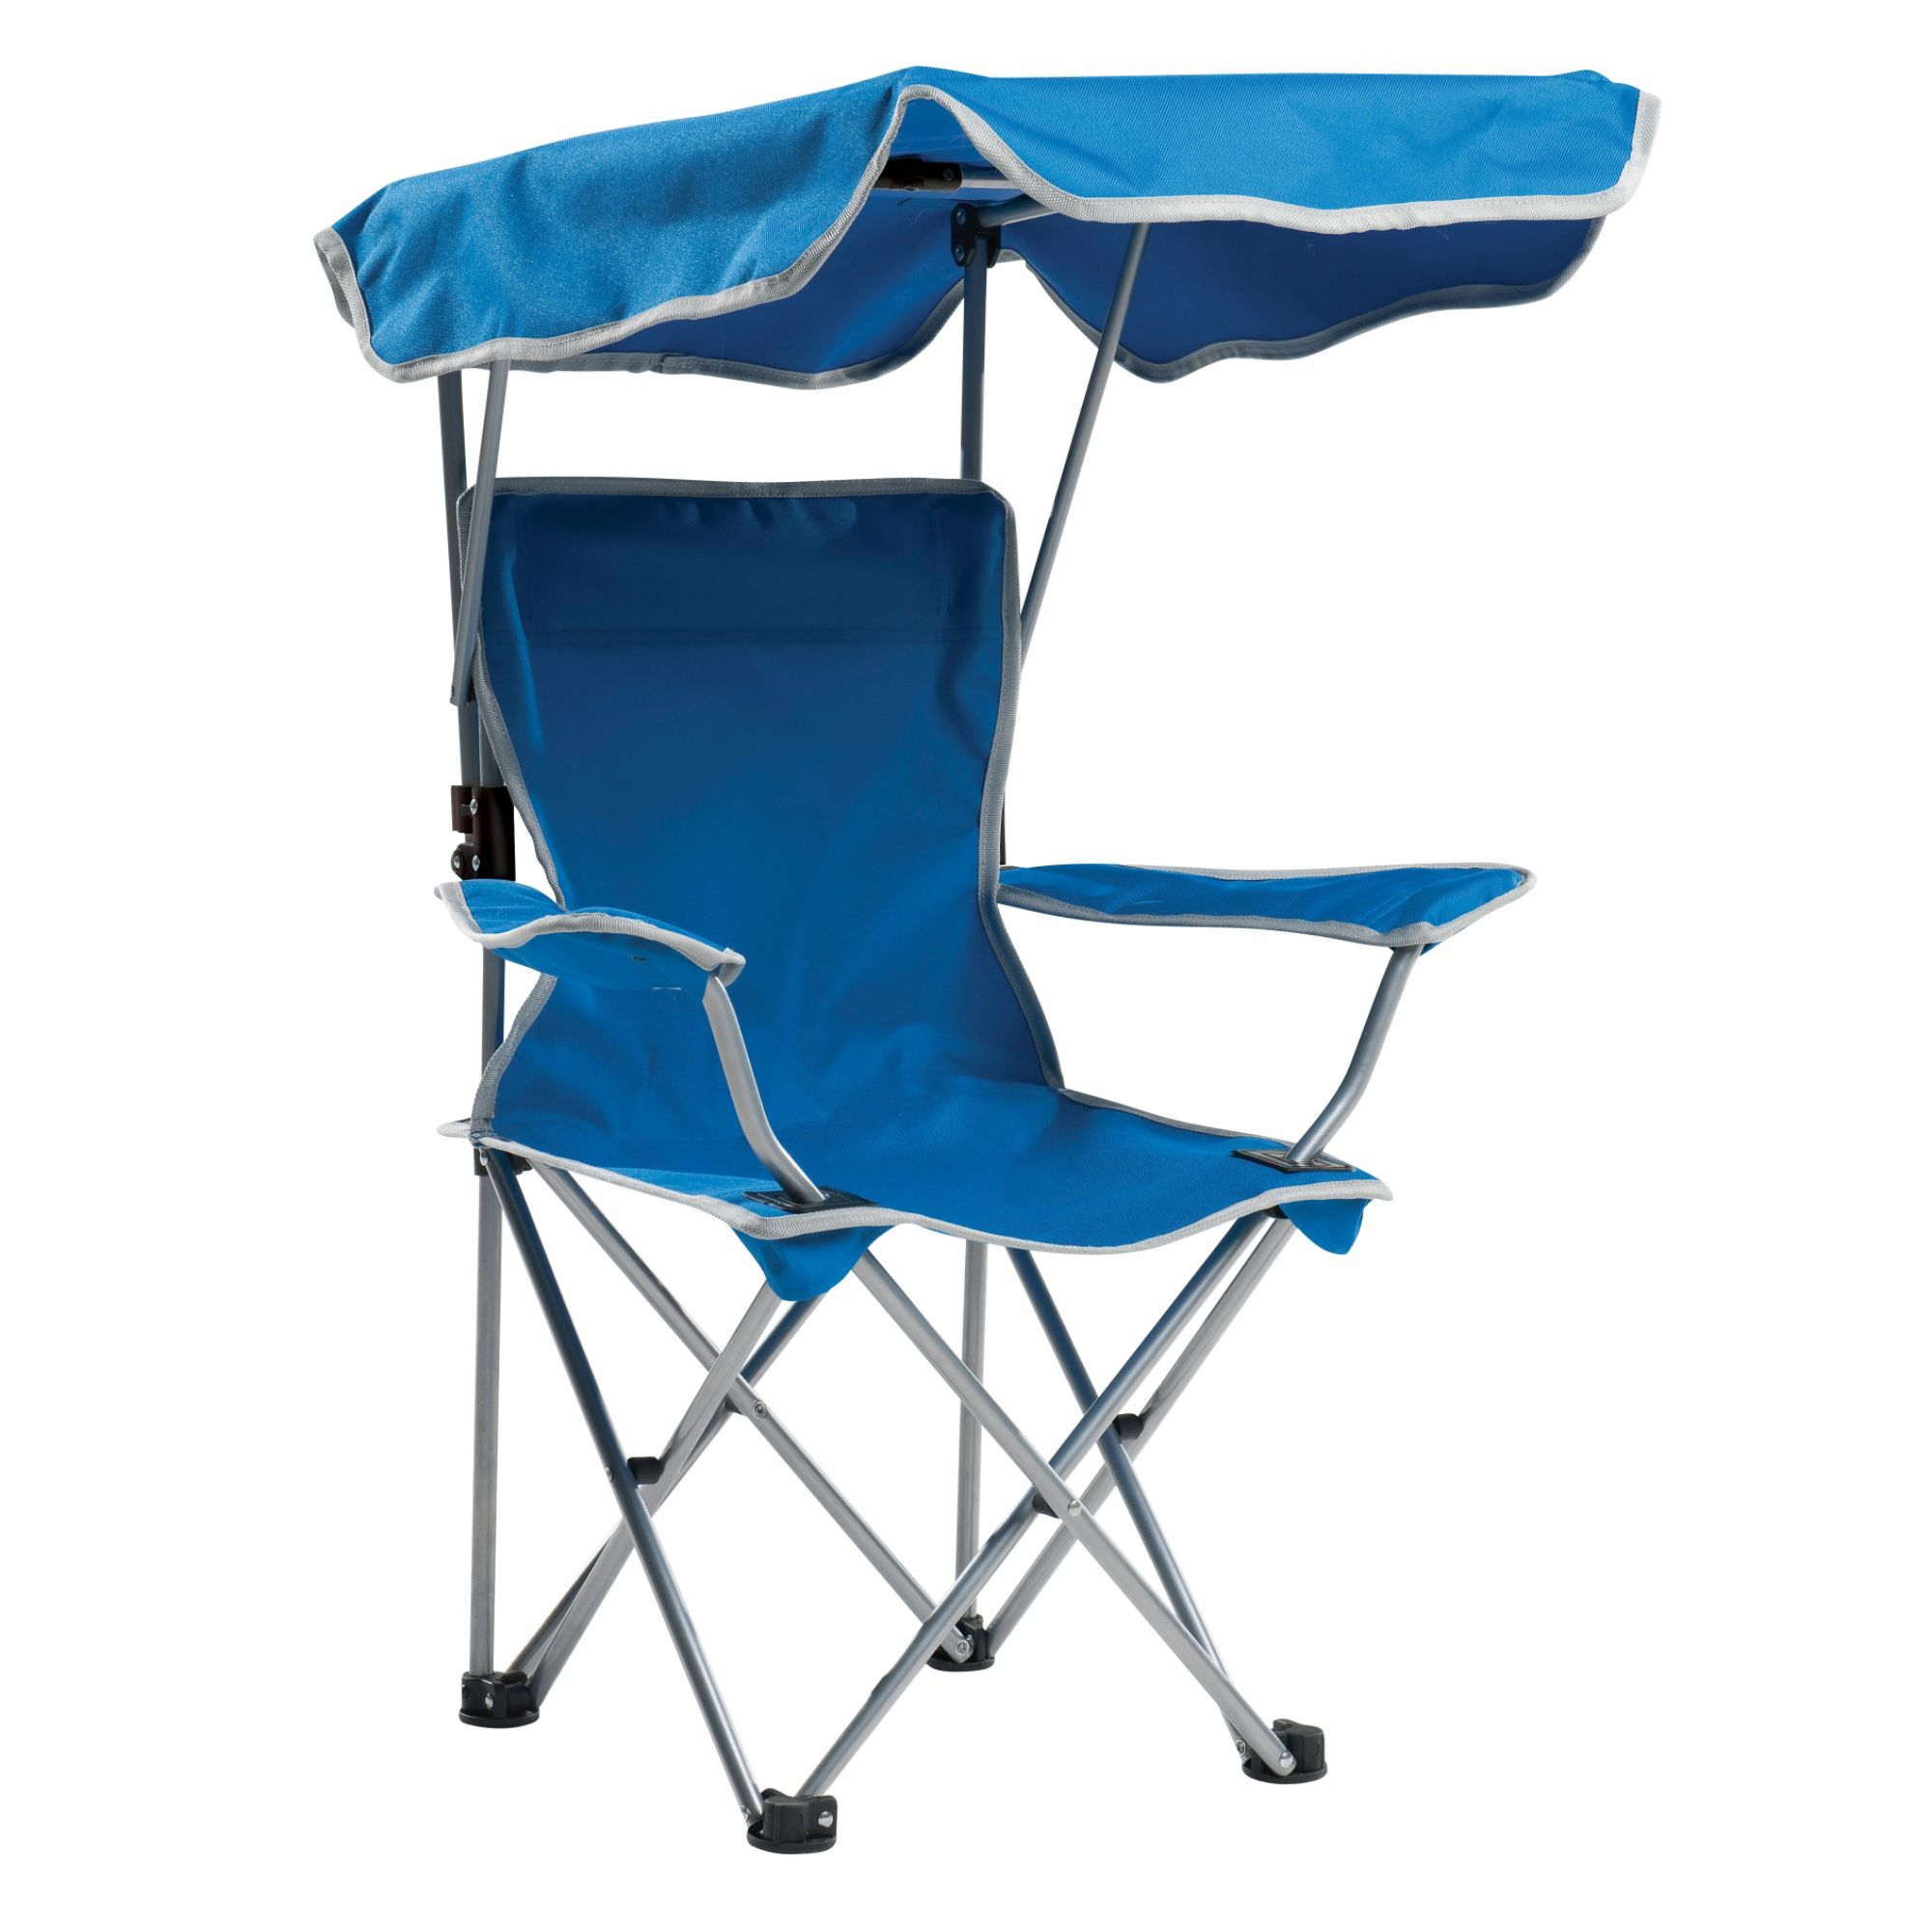 camp chair with canopy headrest for barber northwest territory kid 39s camping fitness